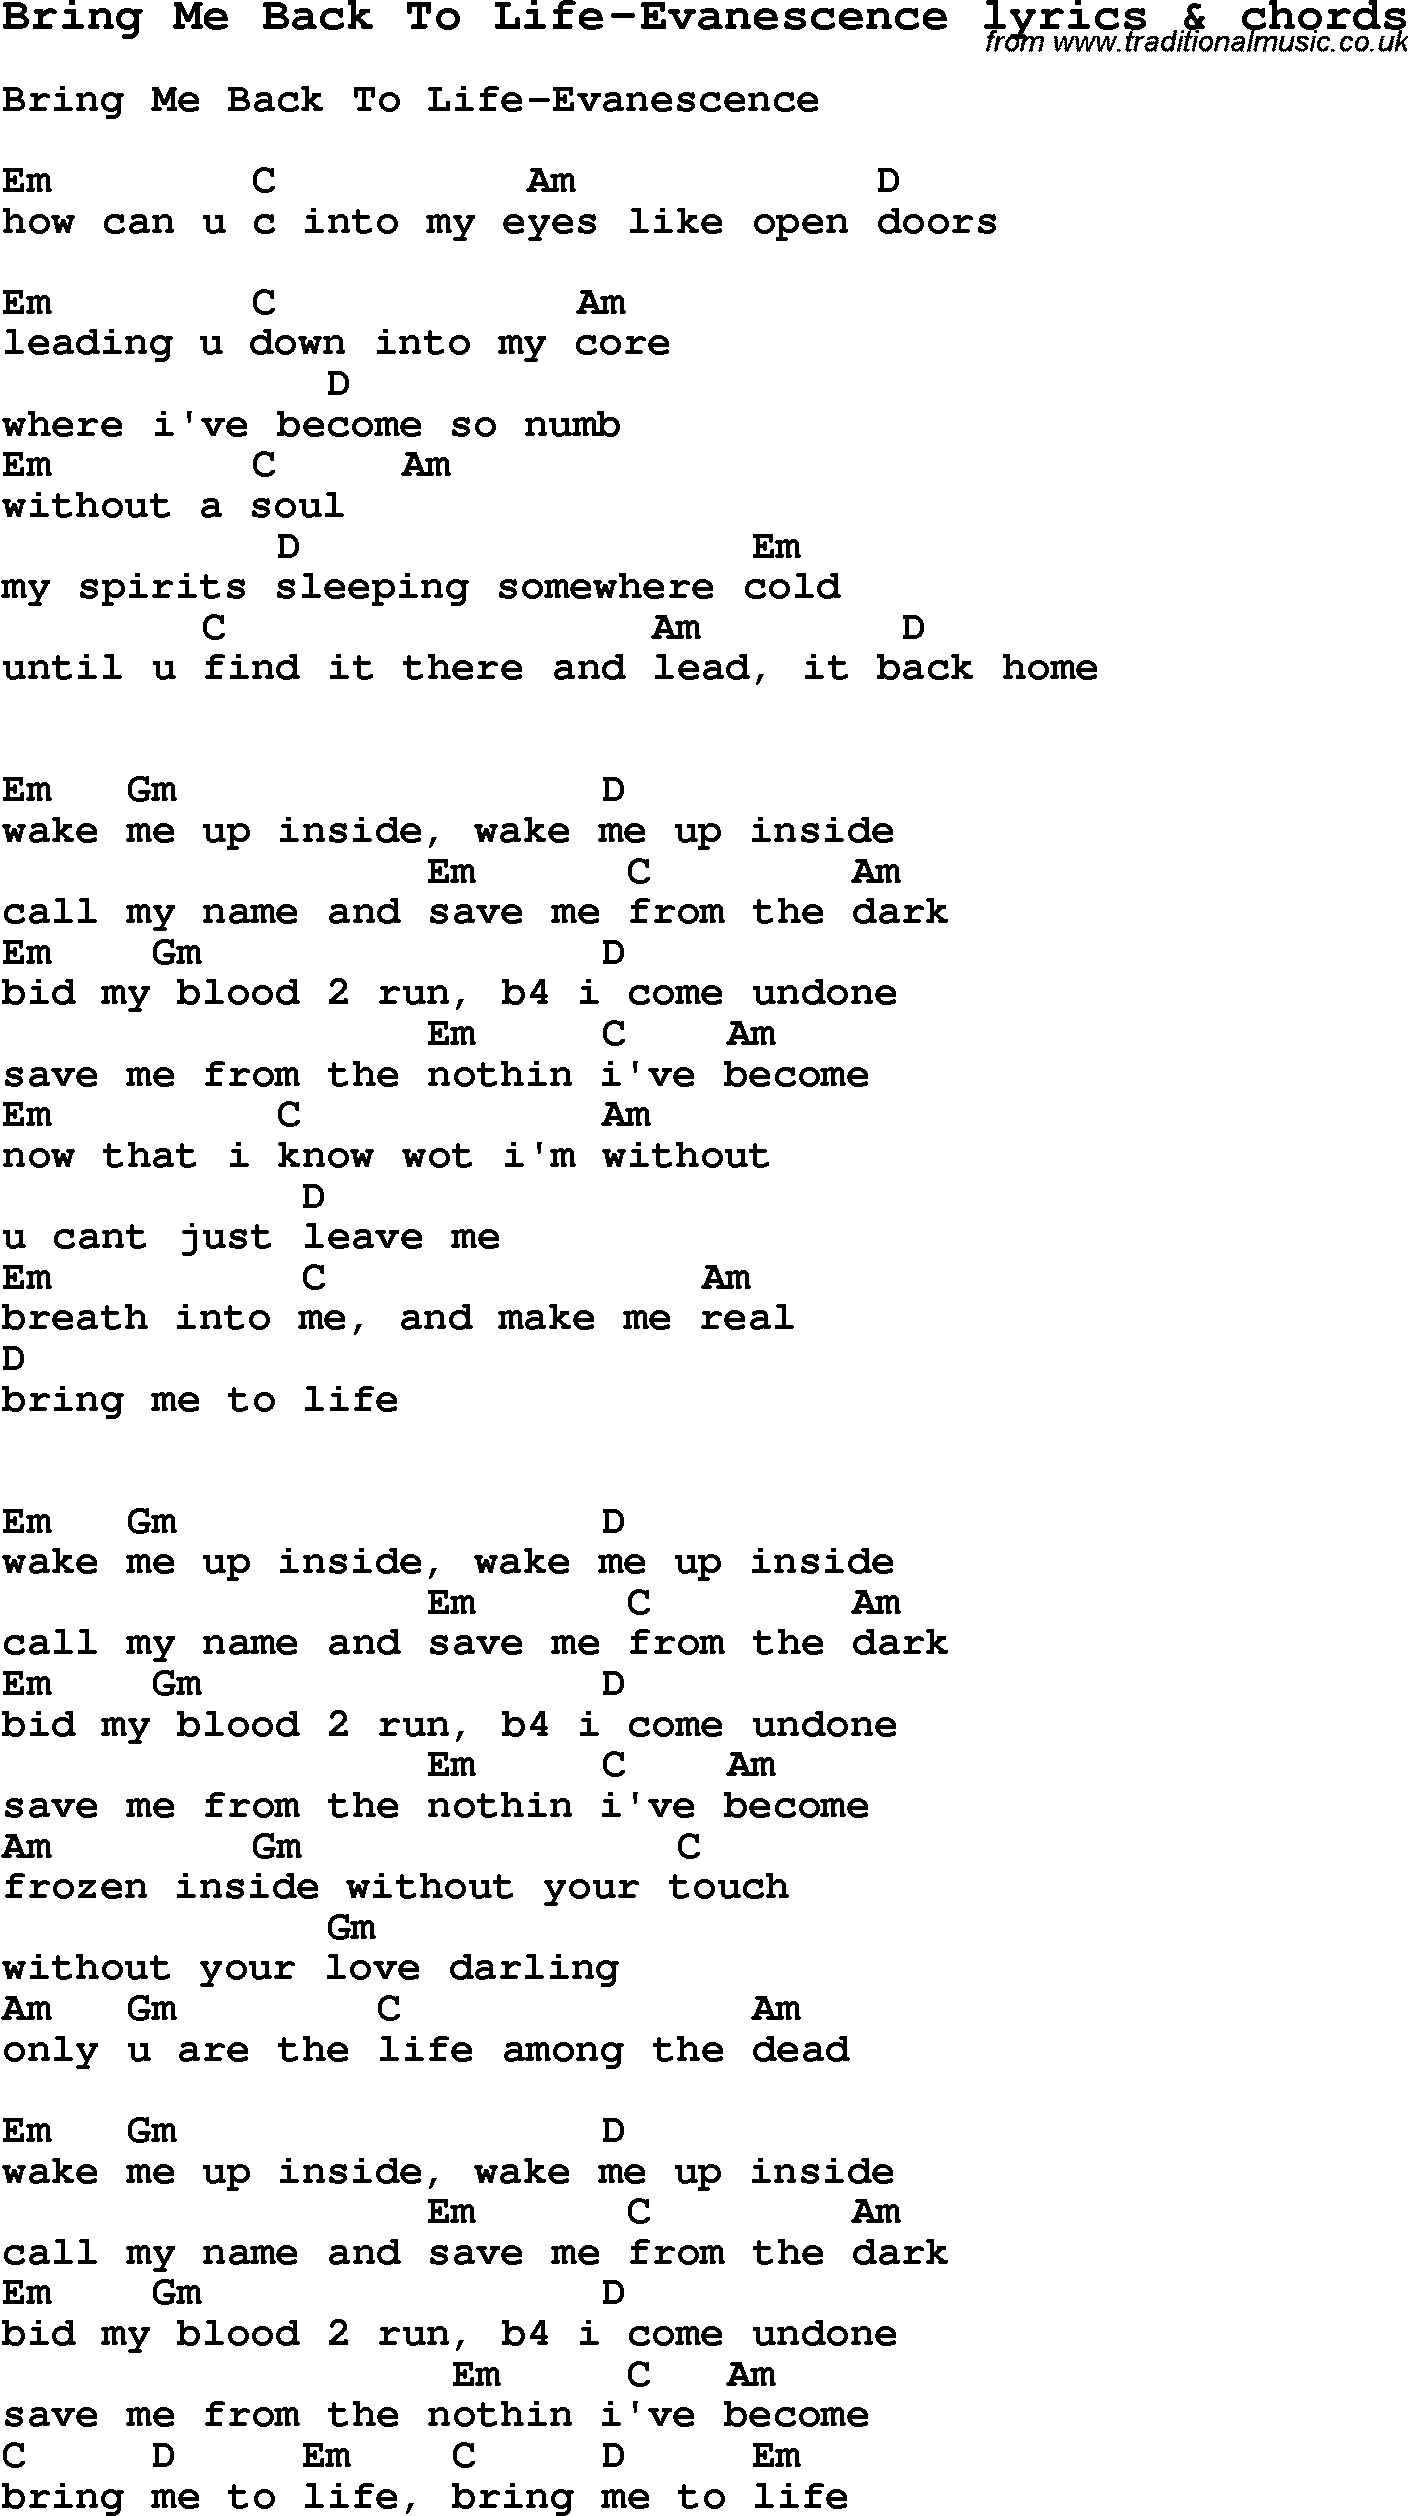 How To Save A Life Chords Love Song Lyrics Forbring Me Back To Life Evanescence With Chords